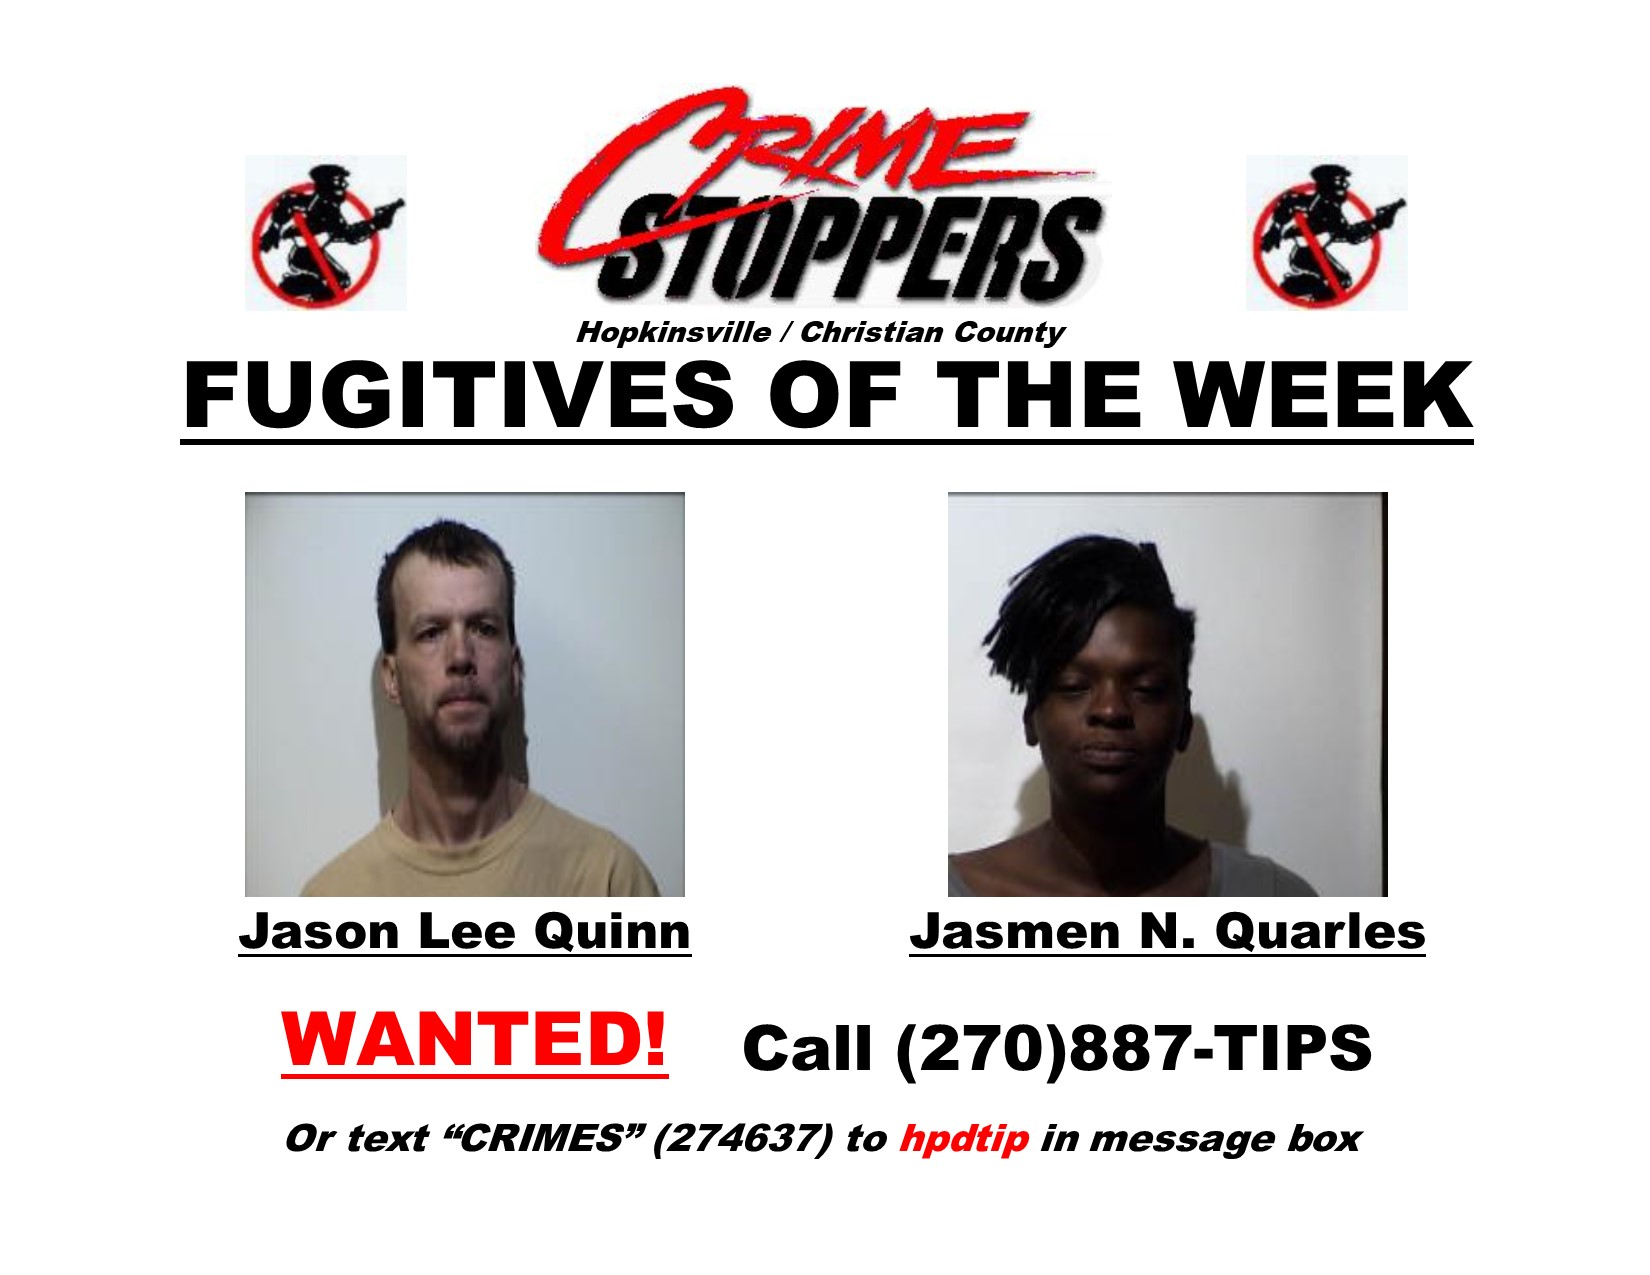 Crime Stoppers report 02/21